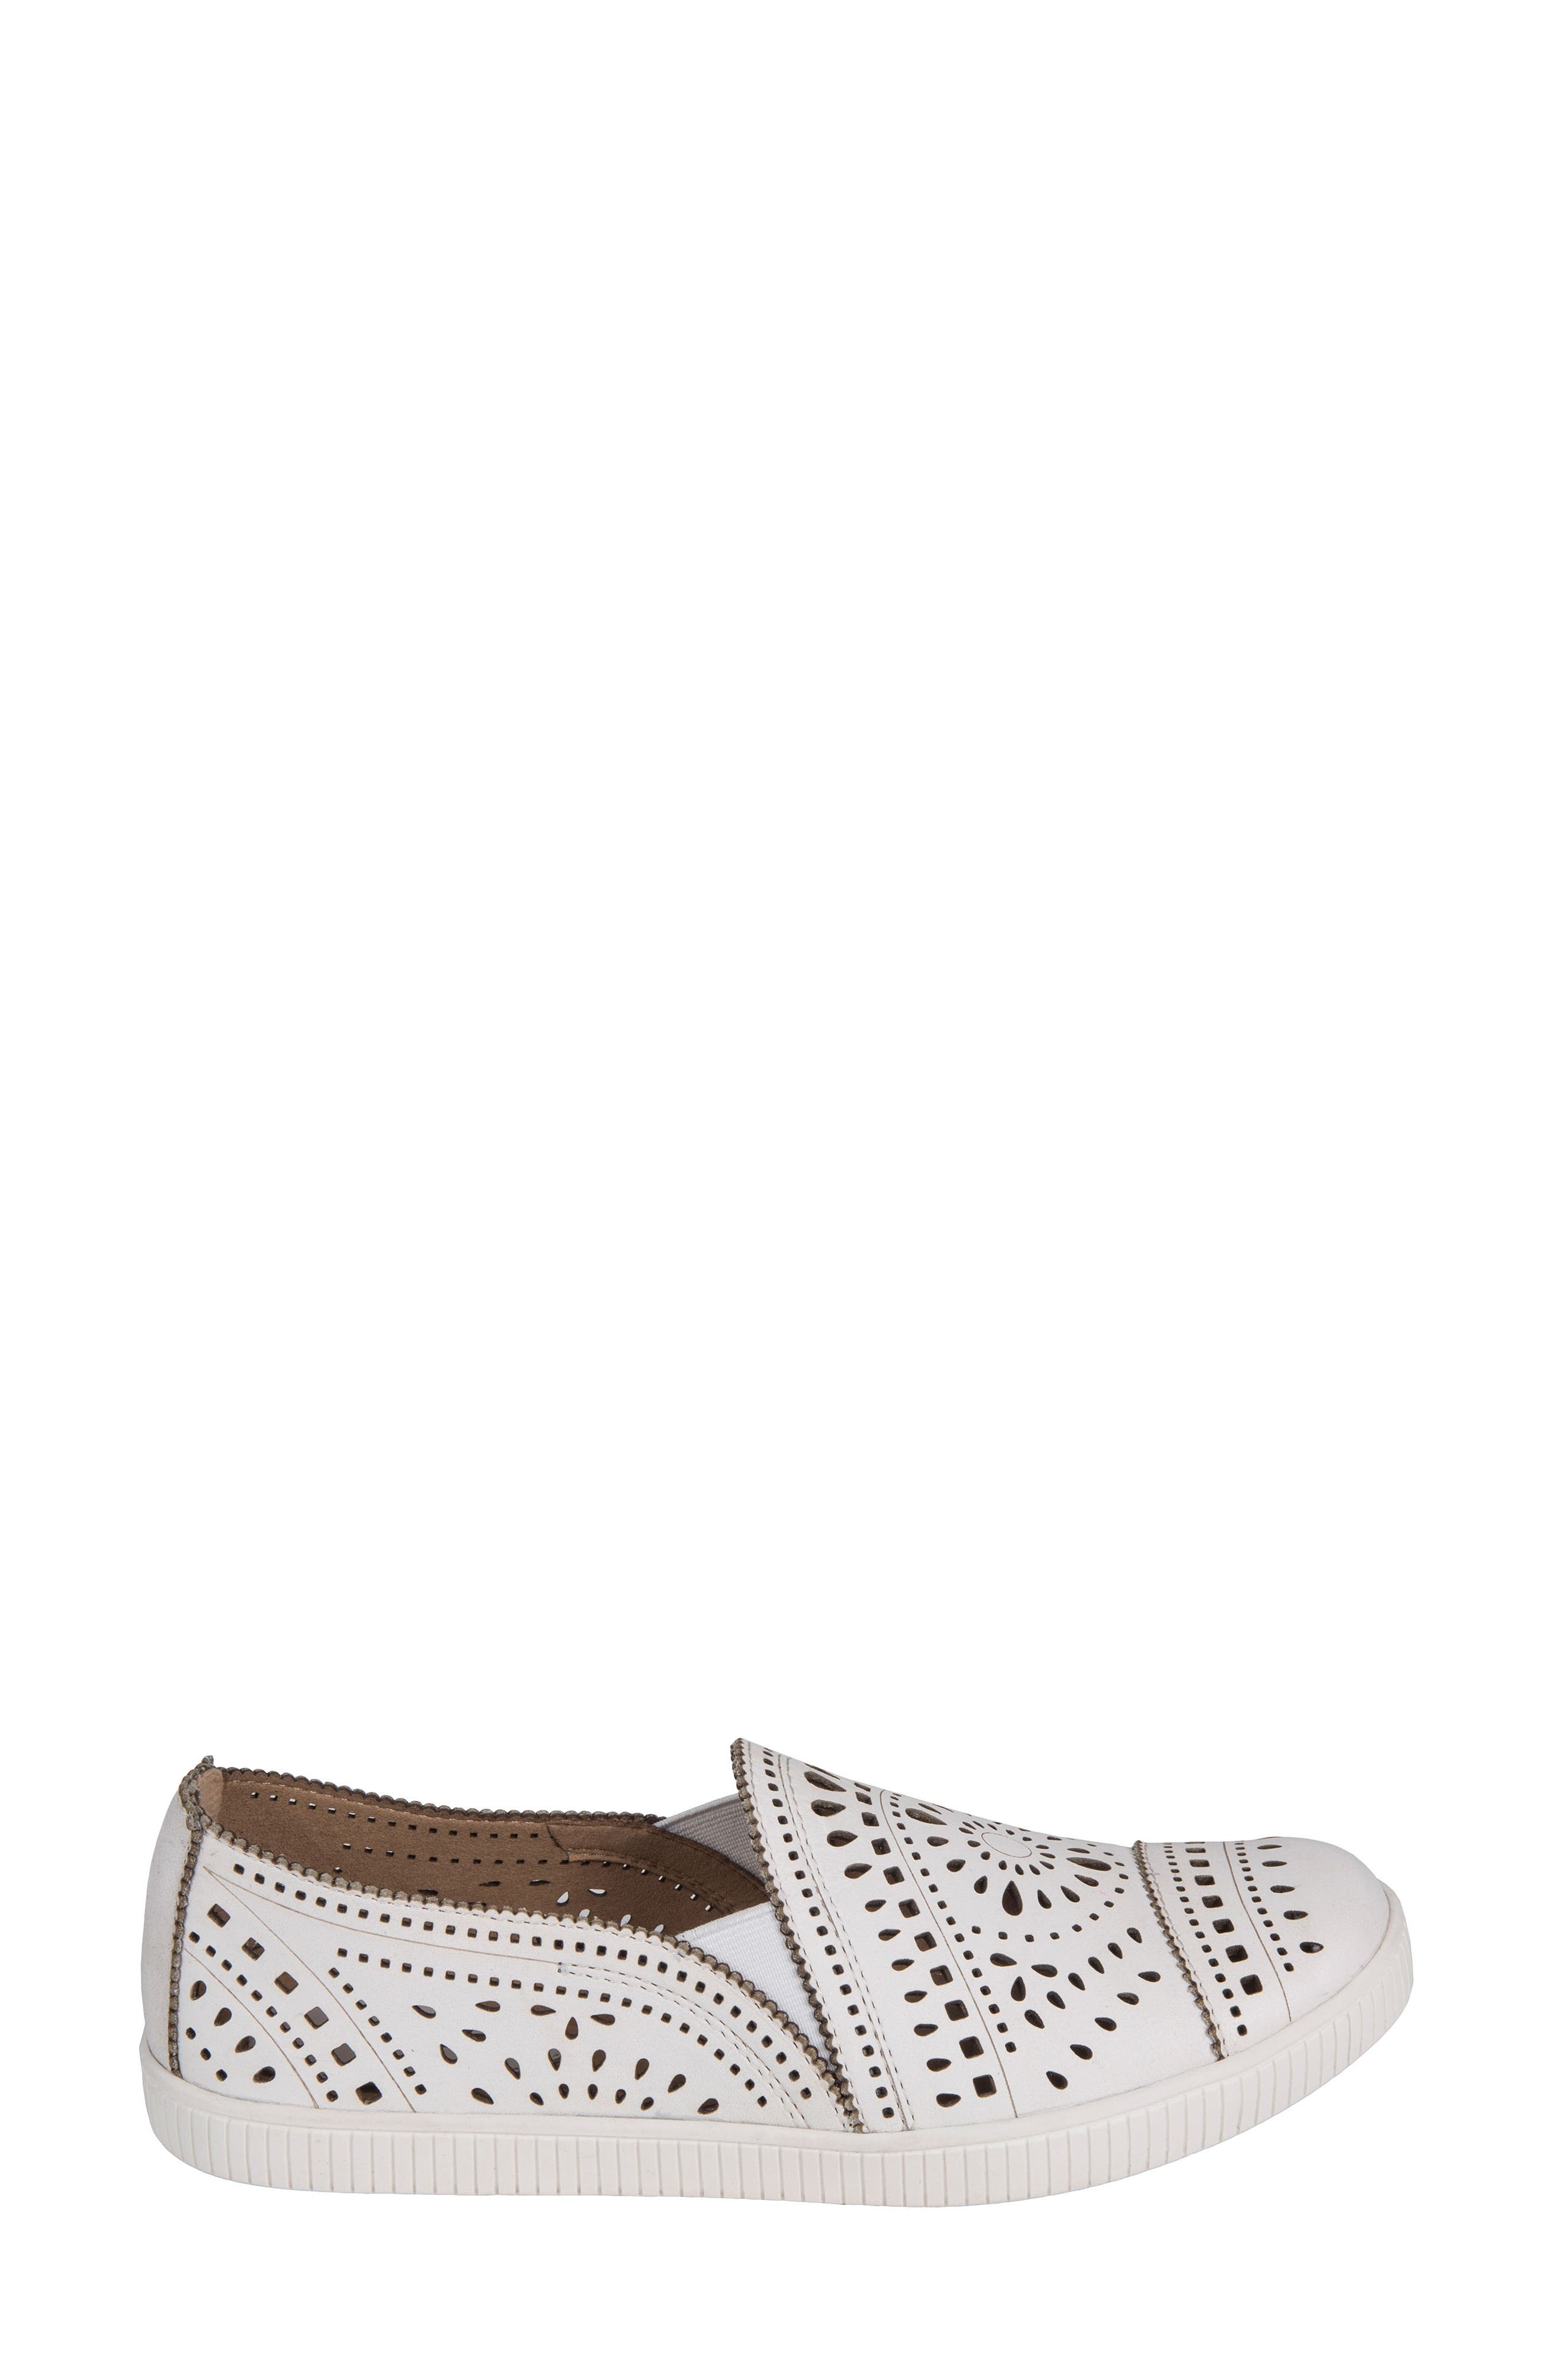 Tayberry Perforated Slip-On Sneaker,                             Alternate thumbnail 10, color,